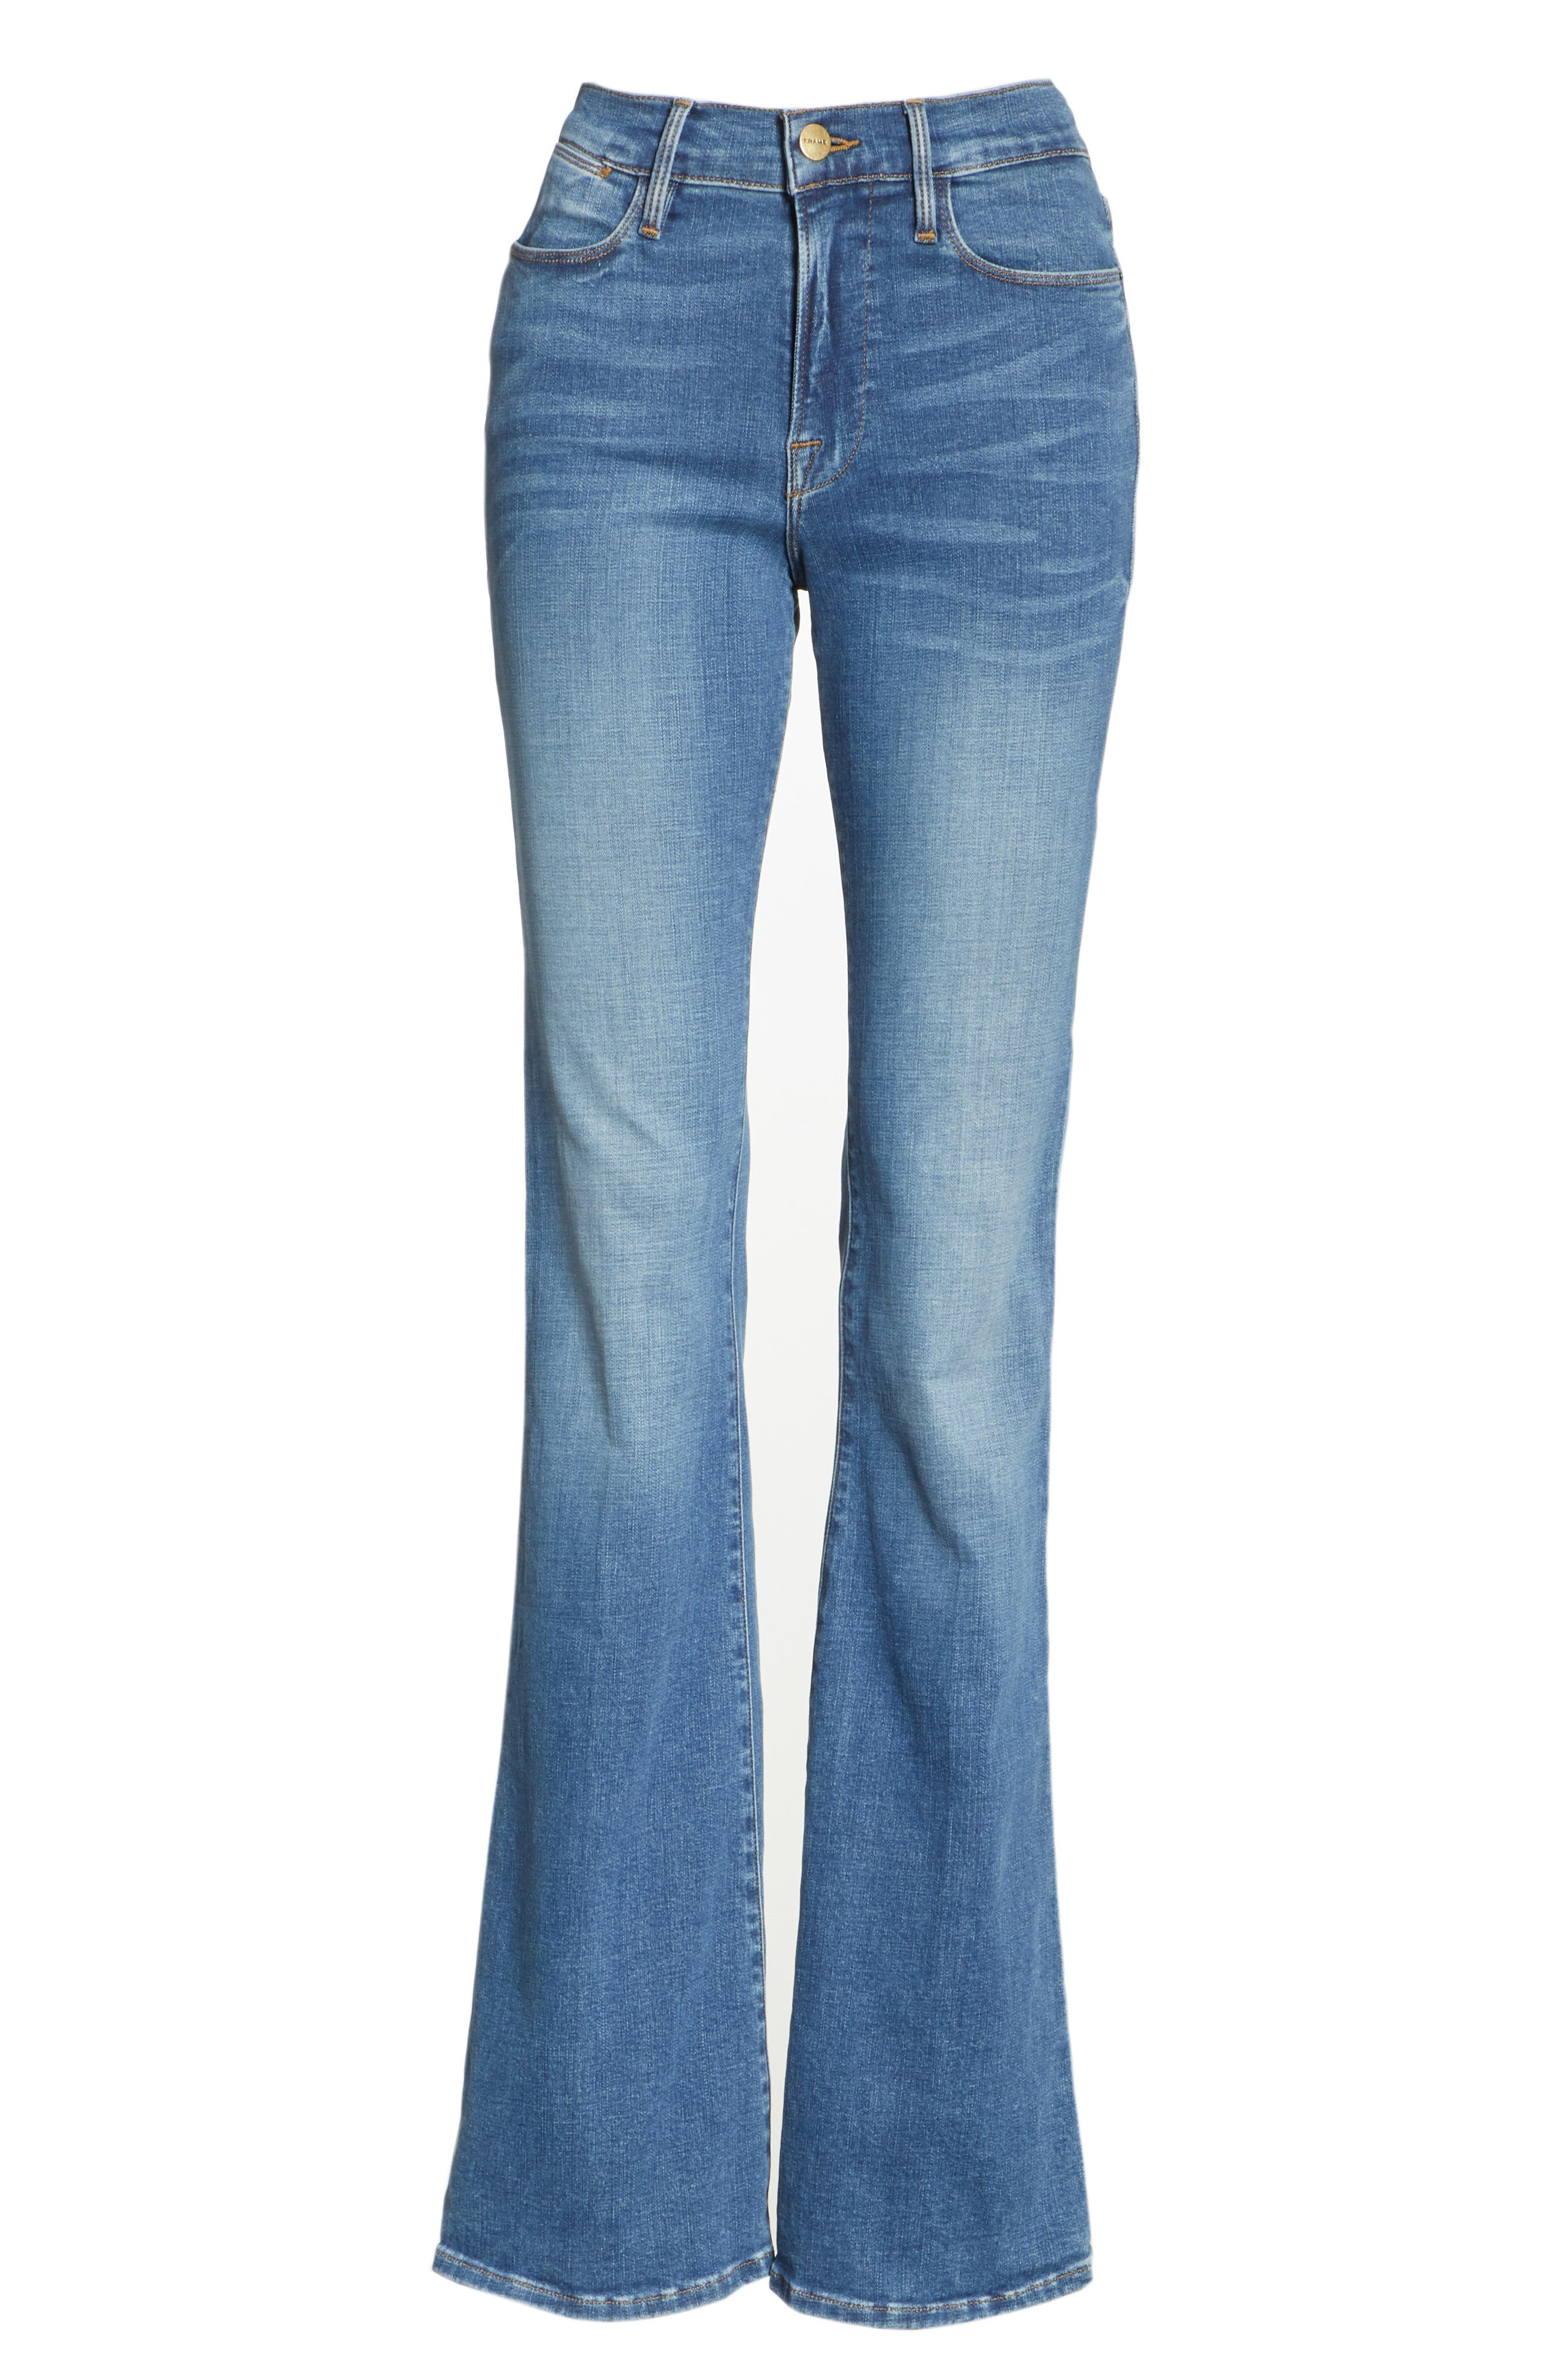 Le High Flare Jeans,                             Alternate thumbnail 7, color,                             COLUMBUS